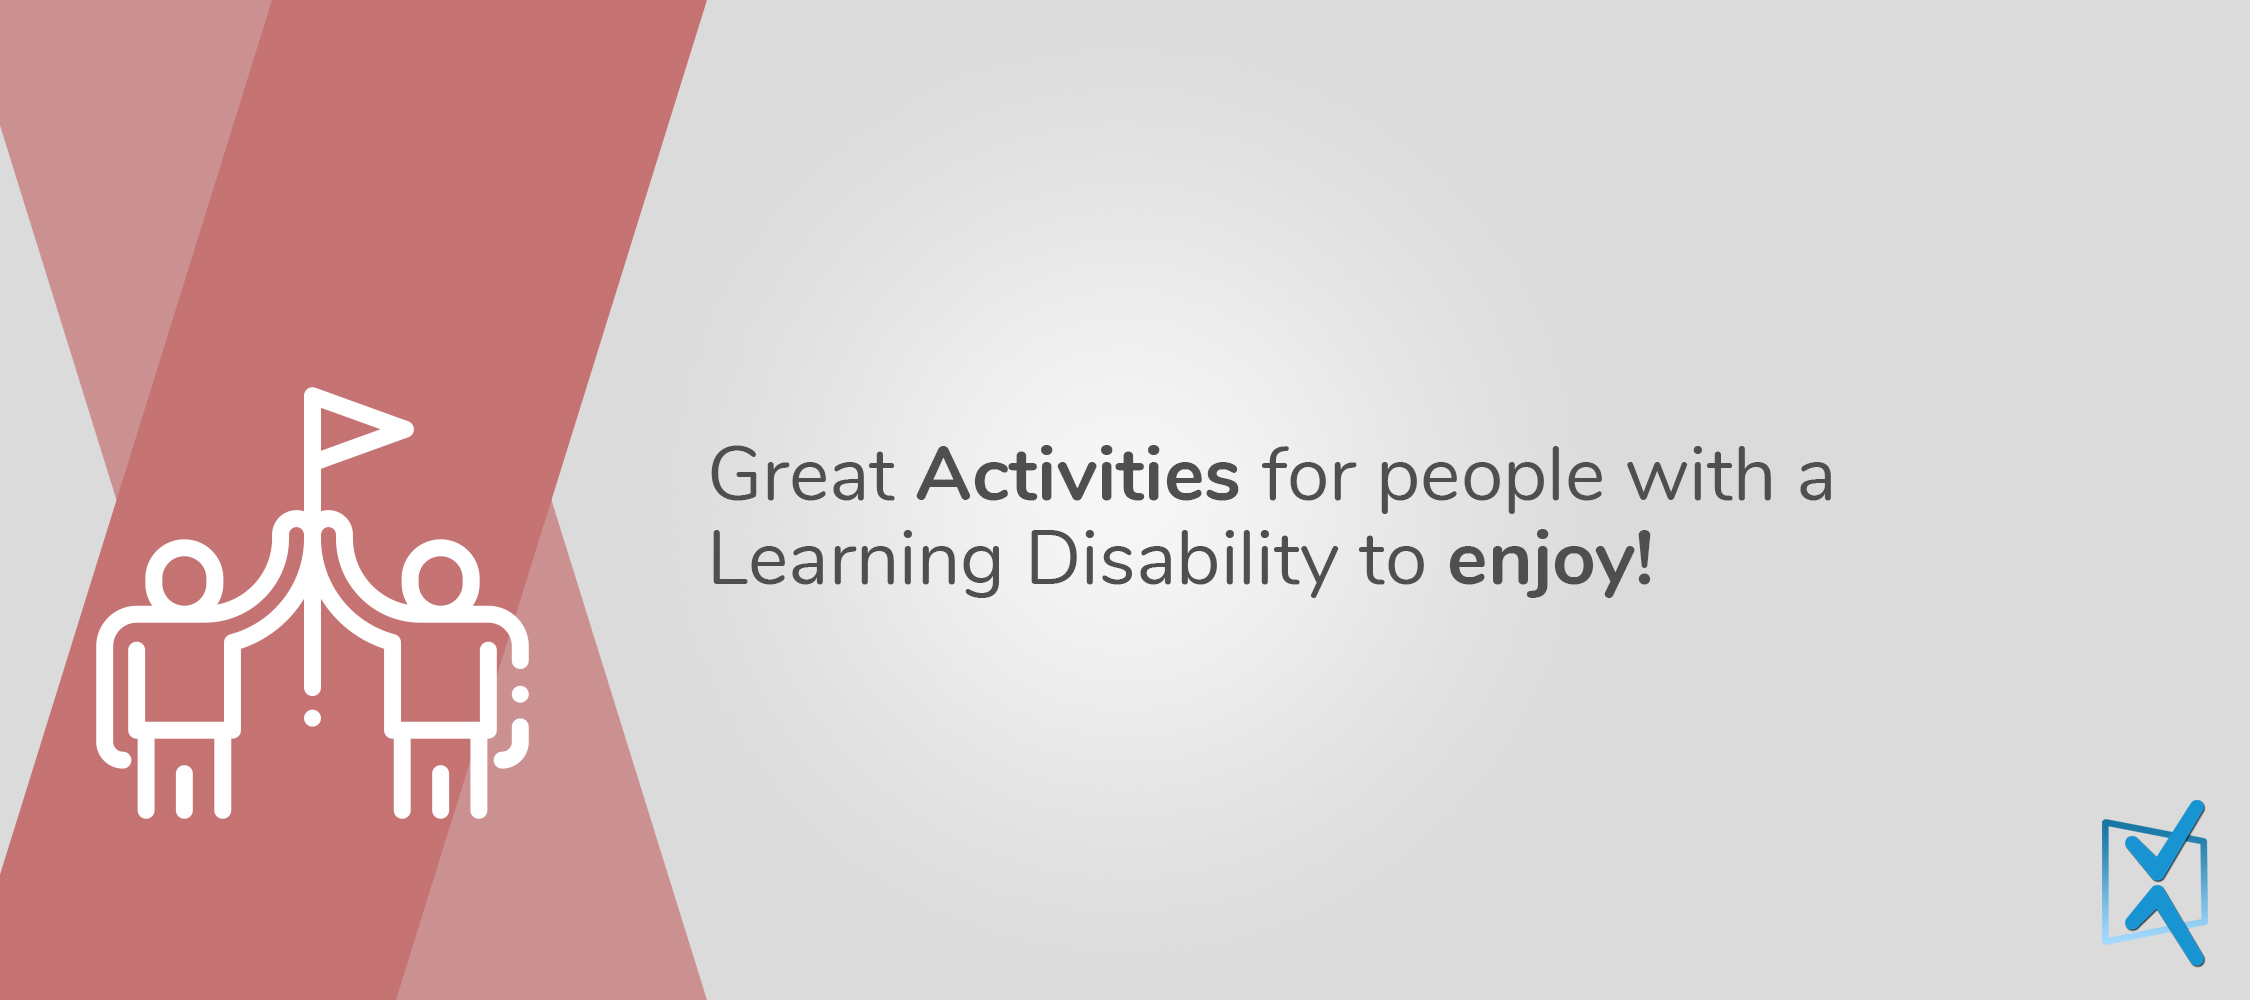 Great Activities for people with a Learning Disability to enjoy!